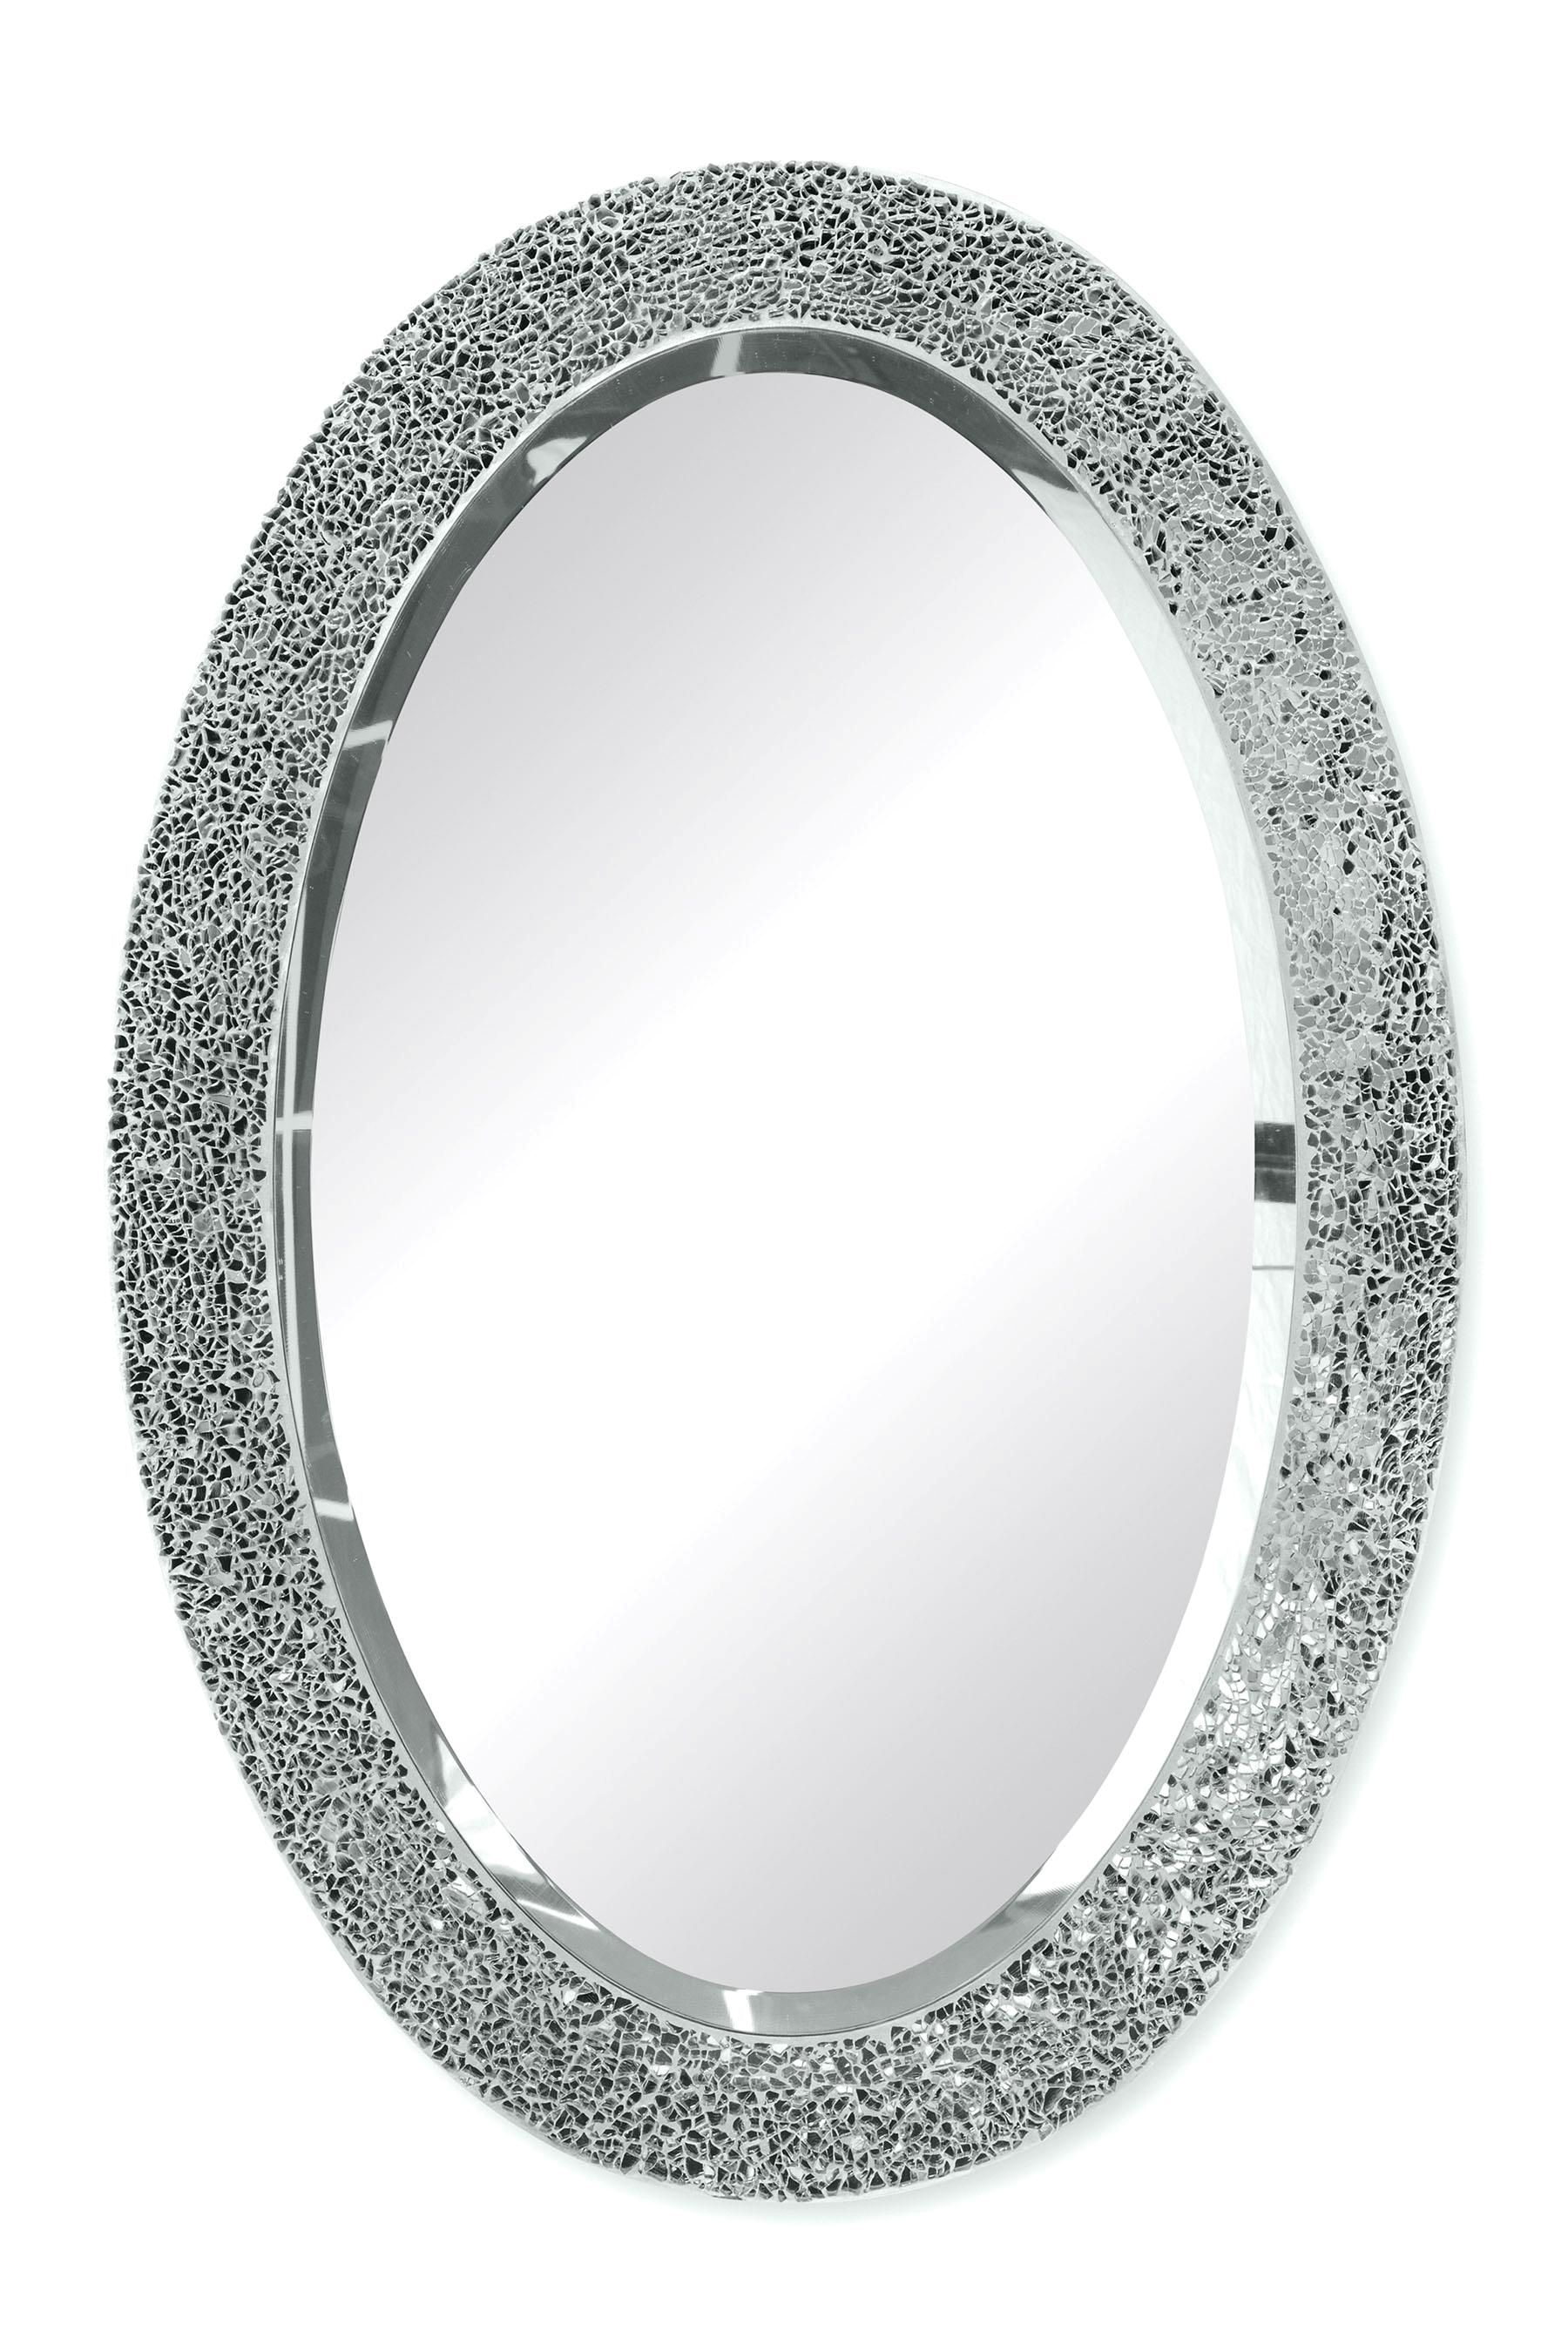 Buy Silver Coloured Sparkle Oval Mirror From The Next Uk Online Shop Mirror Overmantle Mirror Simple Home Decoration